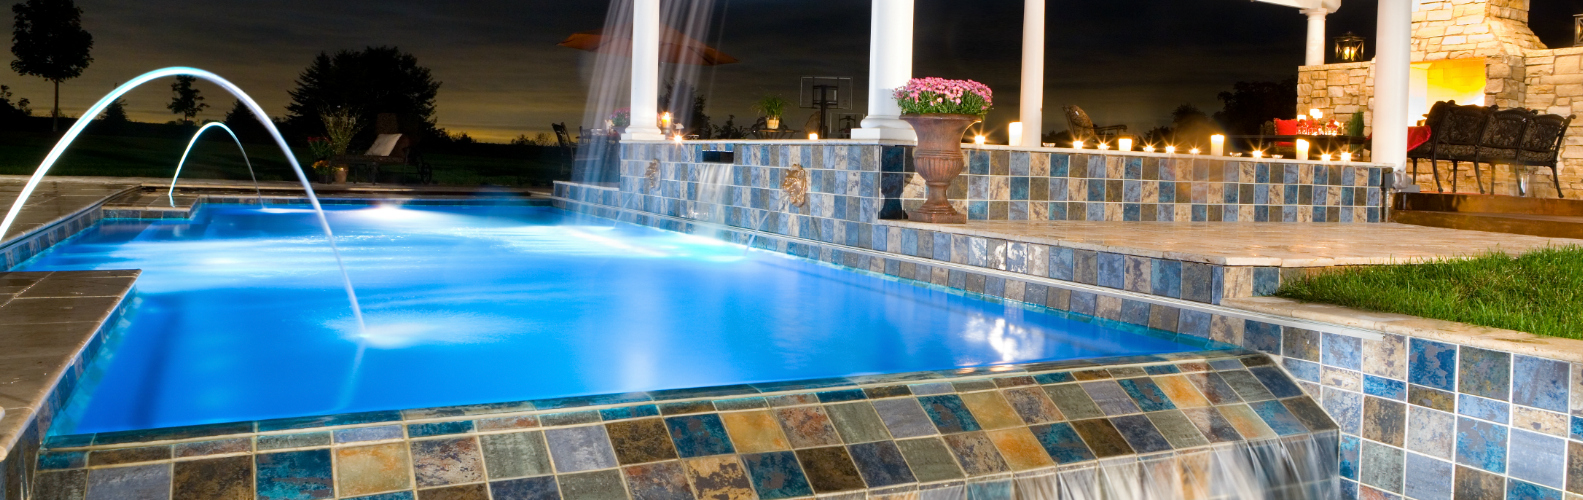 Pool Decks & Patios